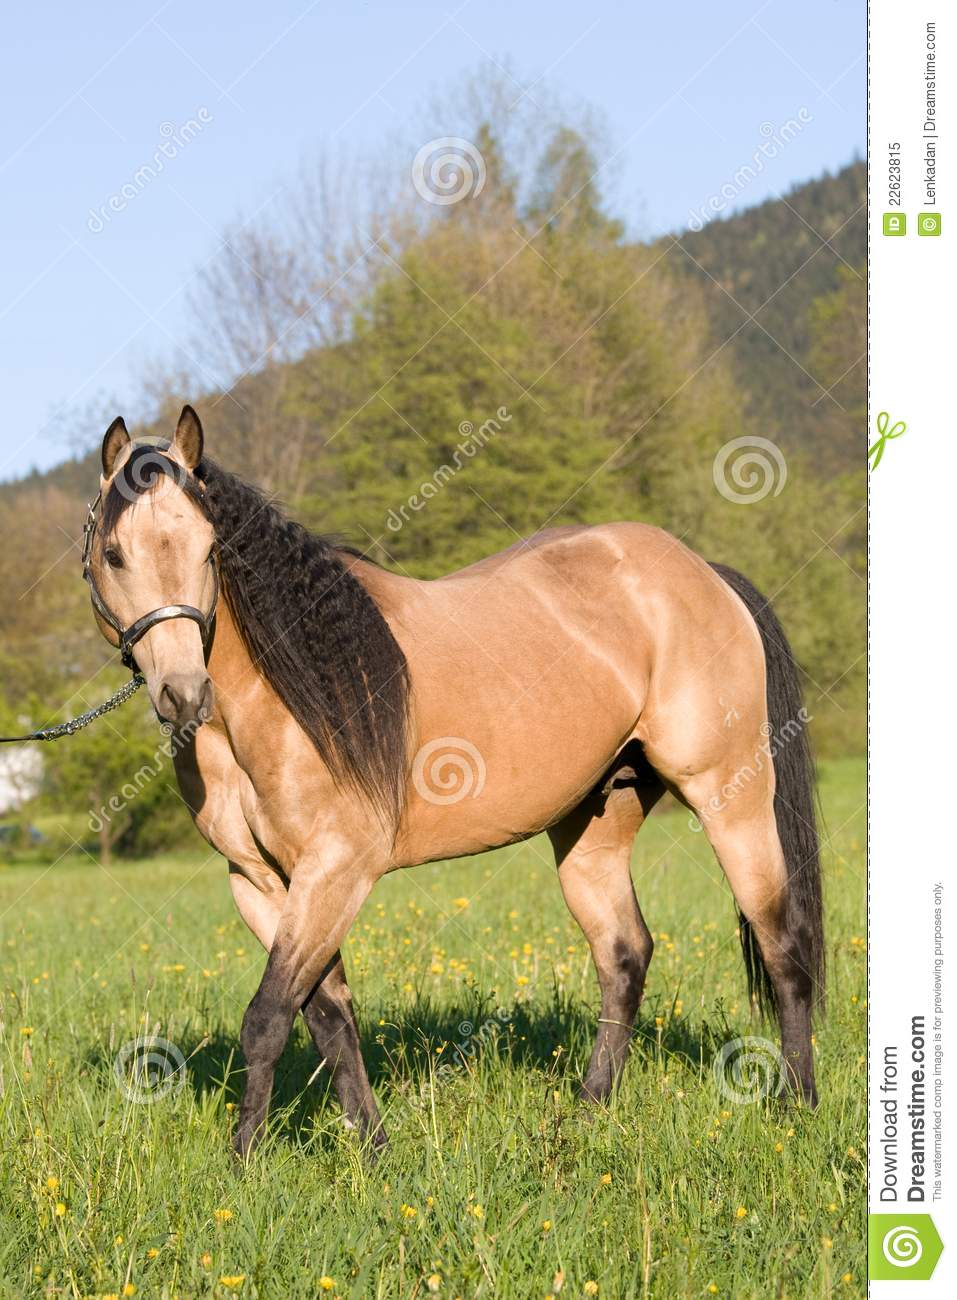 Beautiful Wallpapers 3d Animation American Quarter Horse Stallion Posing Royalty Free Stock